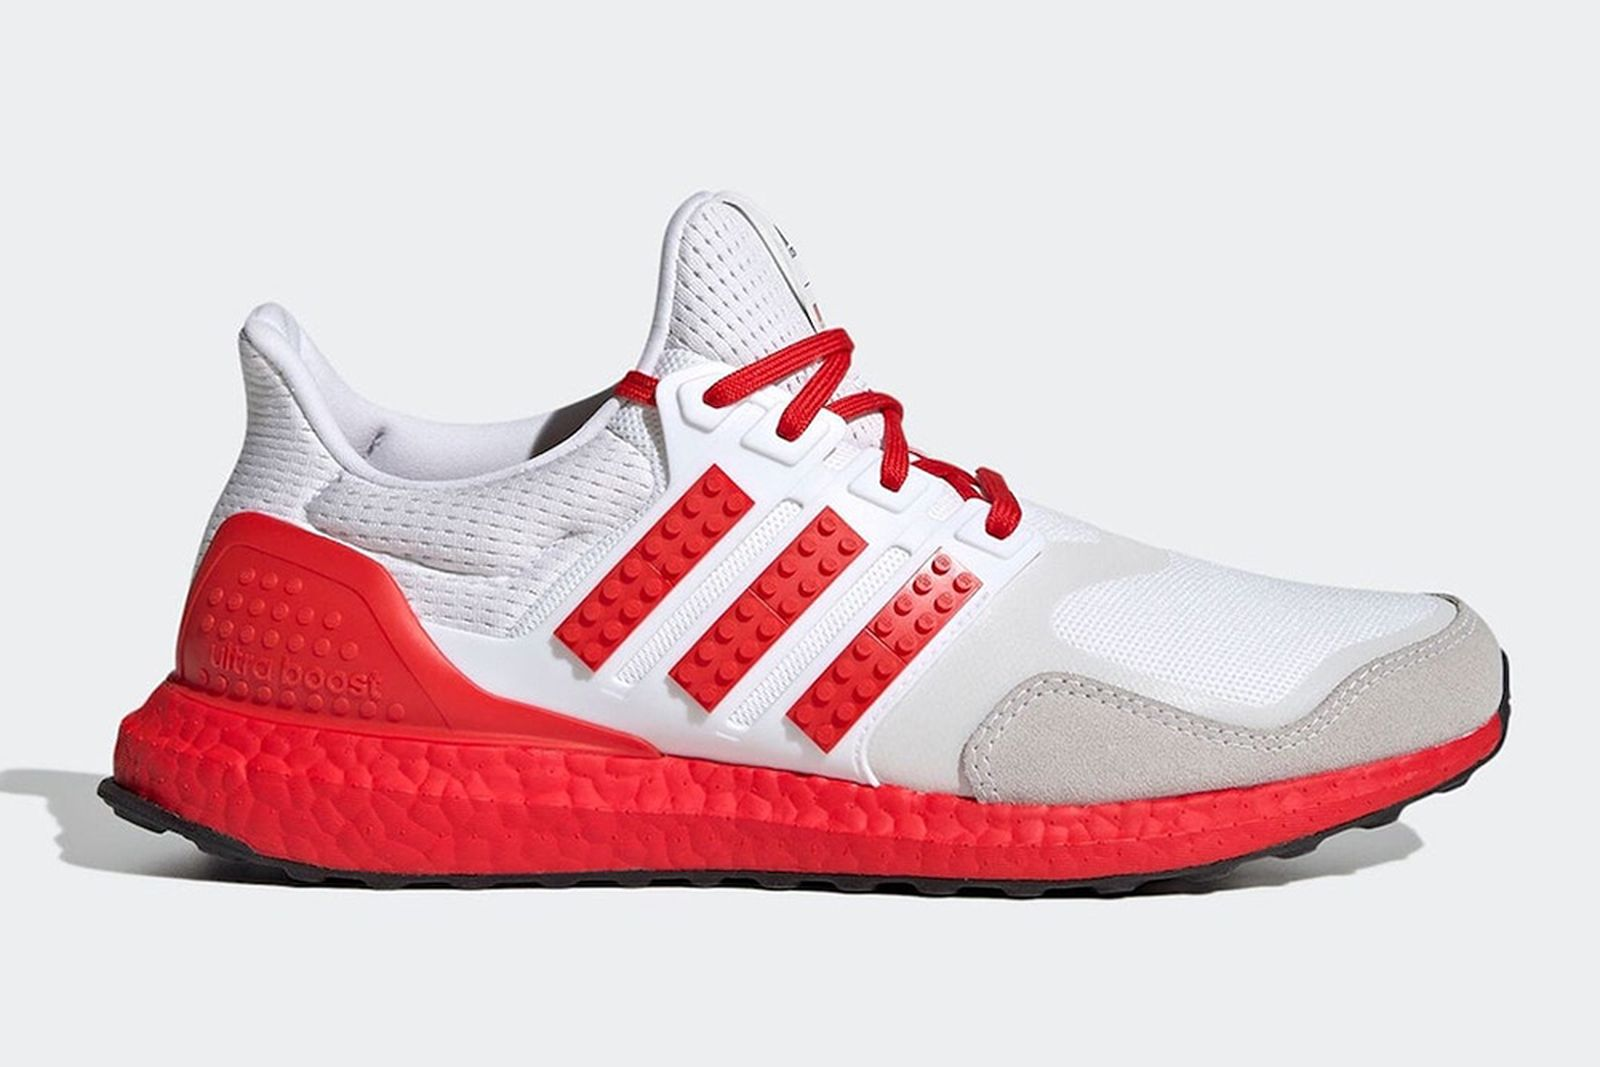 lego-adidas-ultraboost-color-pack-release-date-price-09